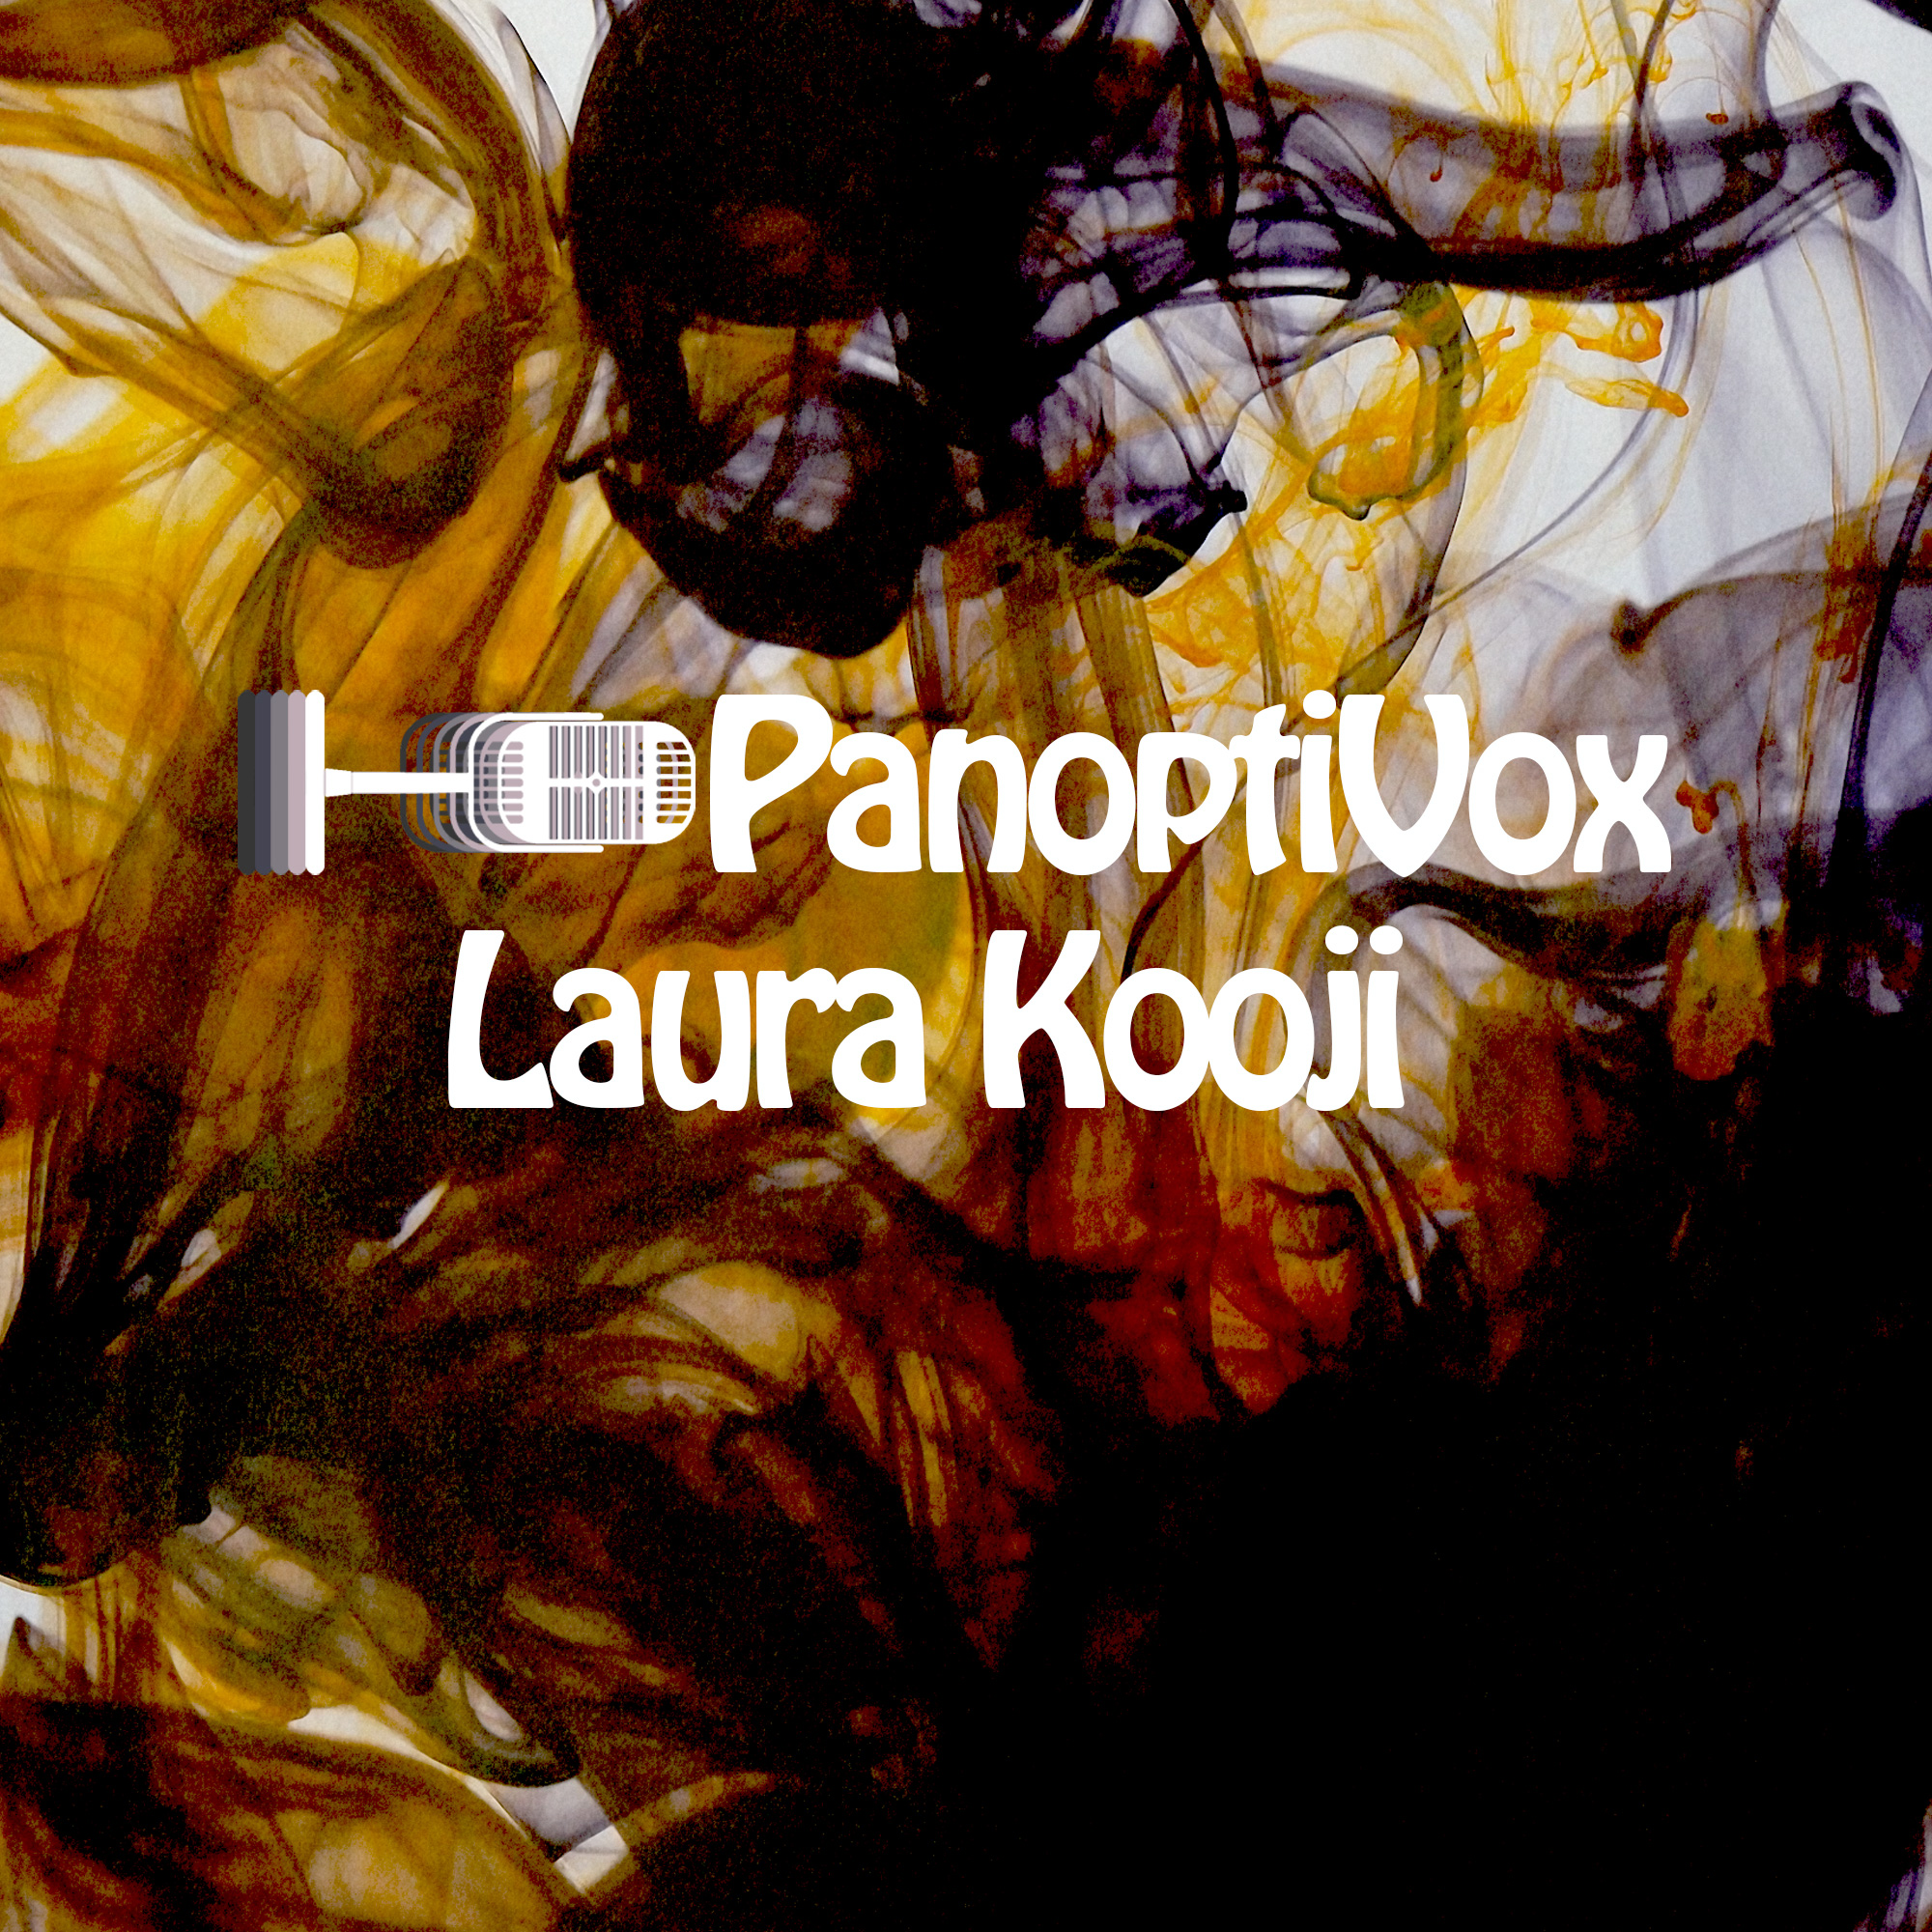 Panoptivox Podcast featuring poet Laura Kooji